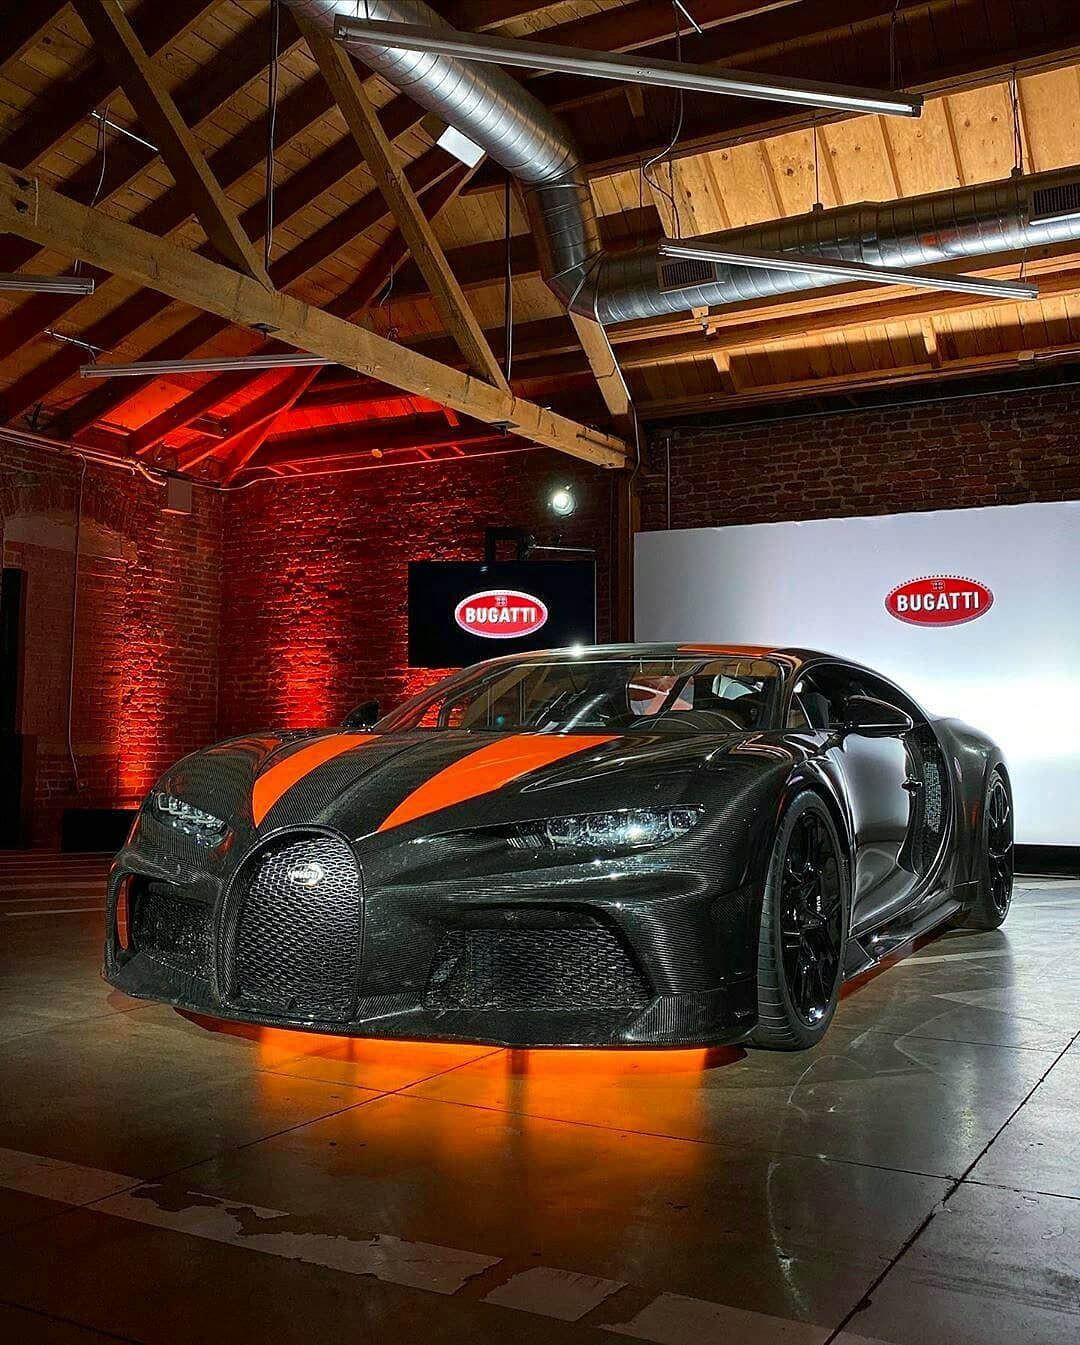 Only Bugatti Chirons On Instagram The Chiron Super Sport 300 At A Private Presentation In Los Angeles Still Unwashed And Full Bugatti Super Cars Sport Cars